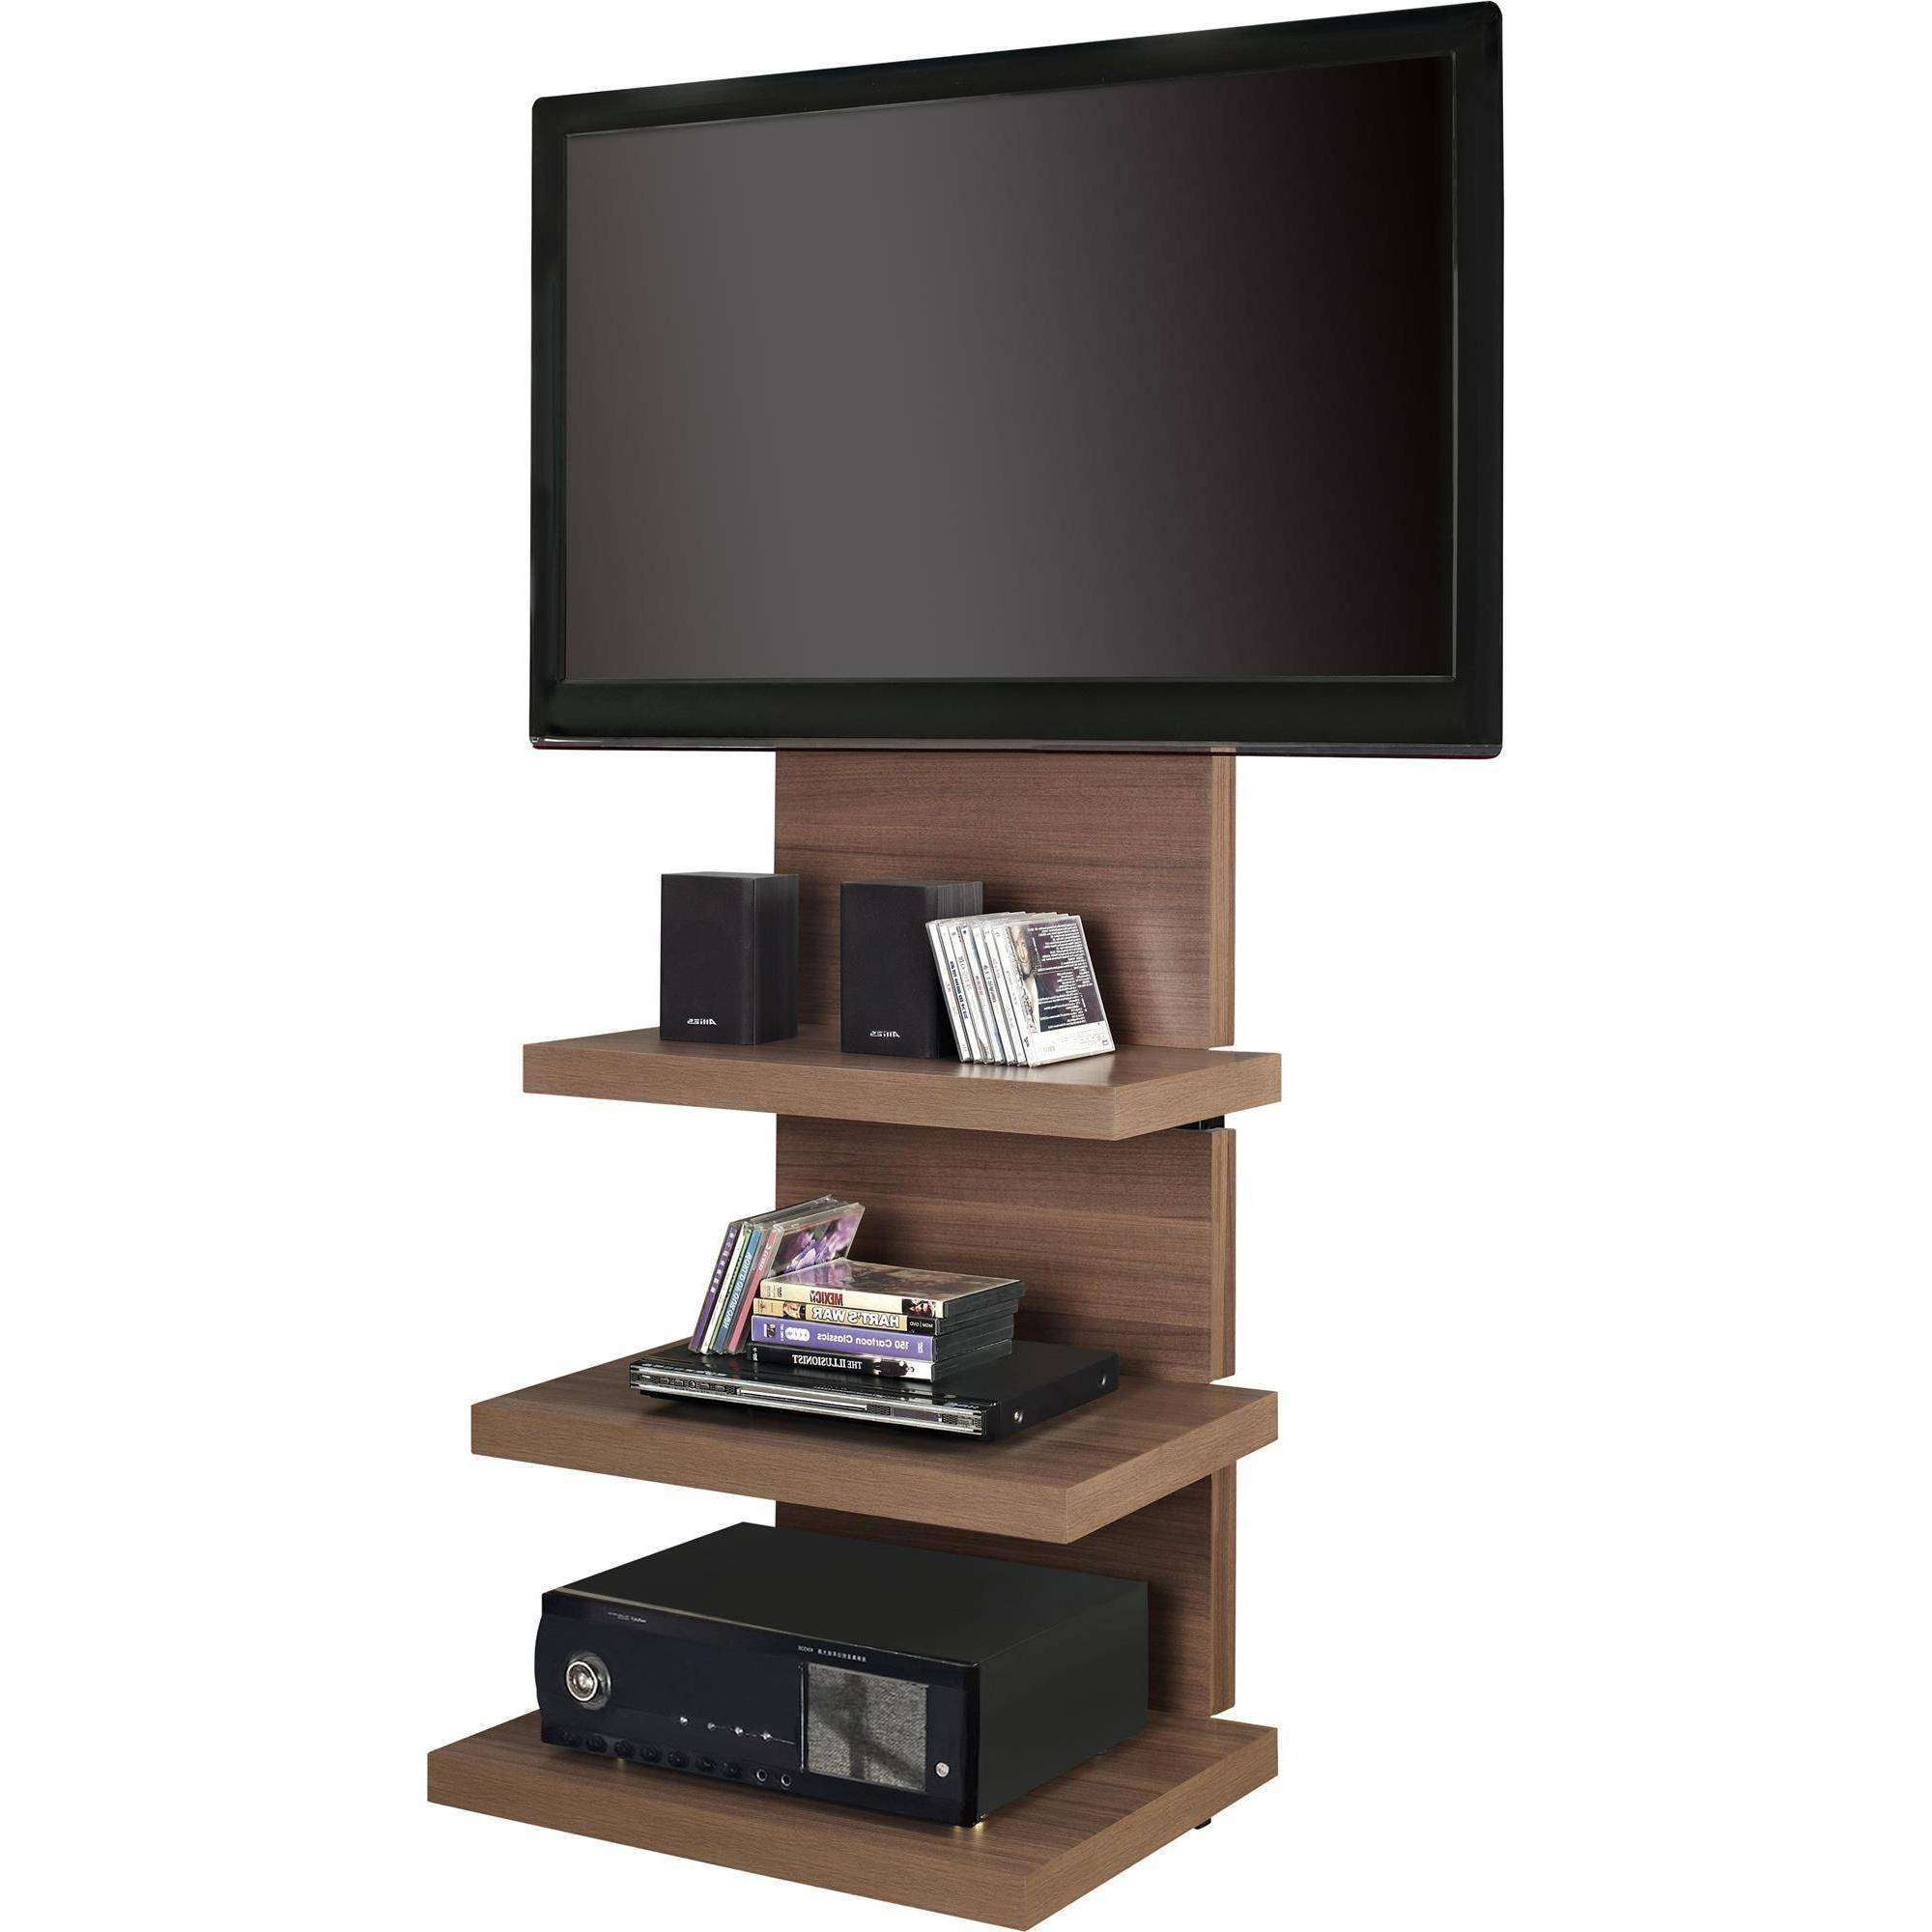 Ameriwood Home Elevation Altramount Tv Stand For Tvs Up To 60 Inside Tv Stands For 70 Inch Tvs (View 14 of 15)